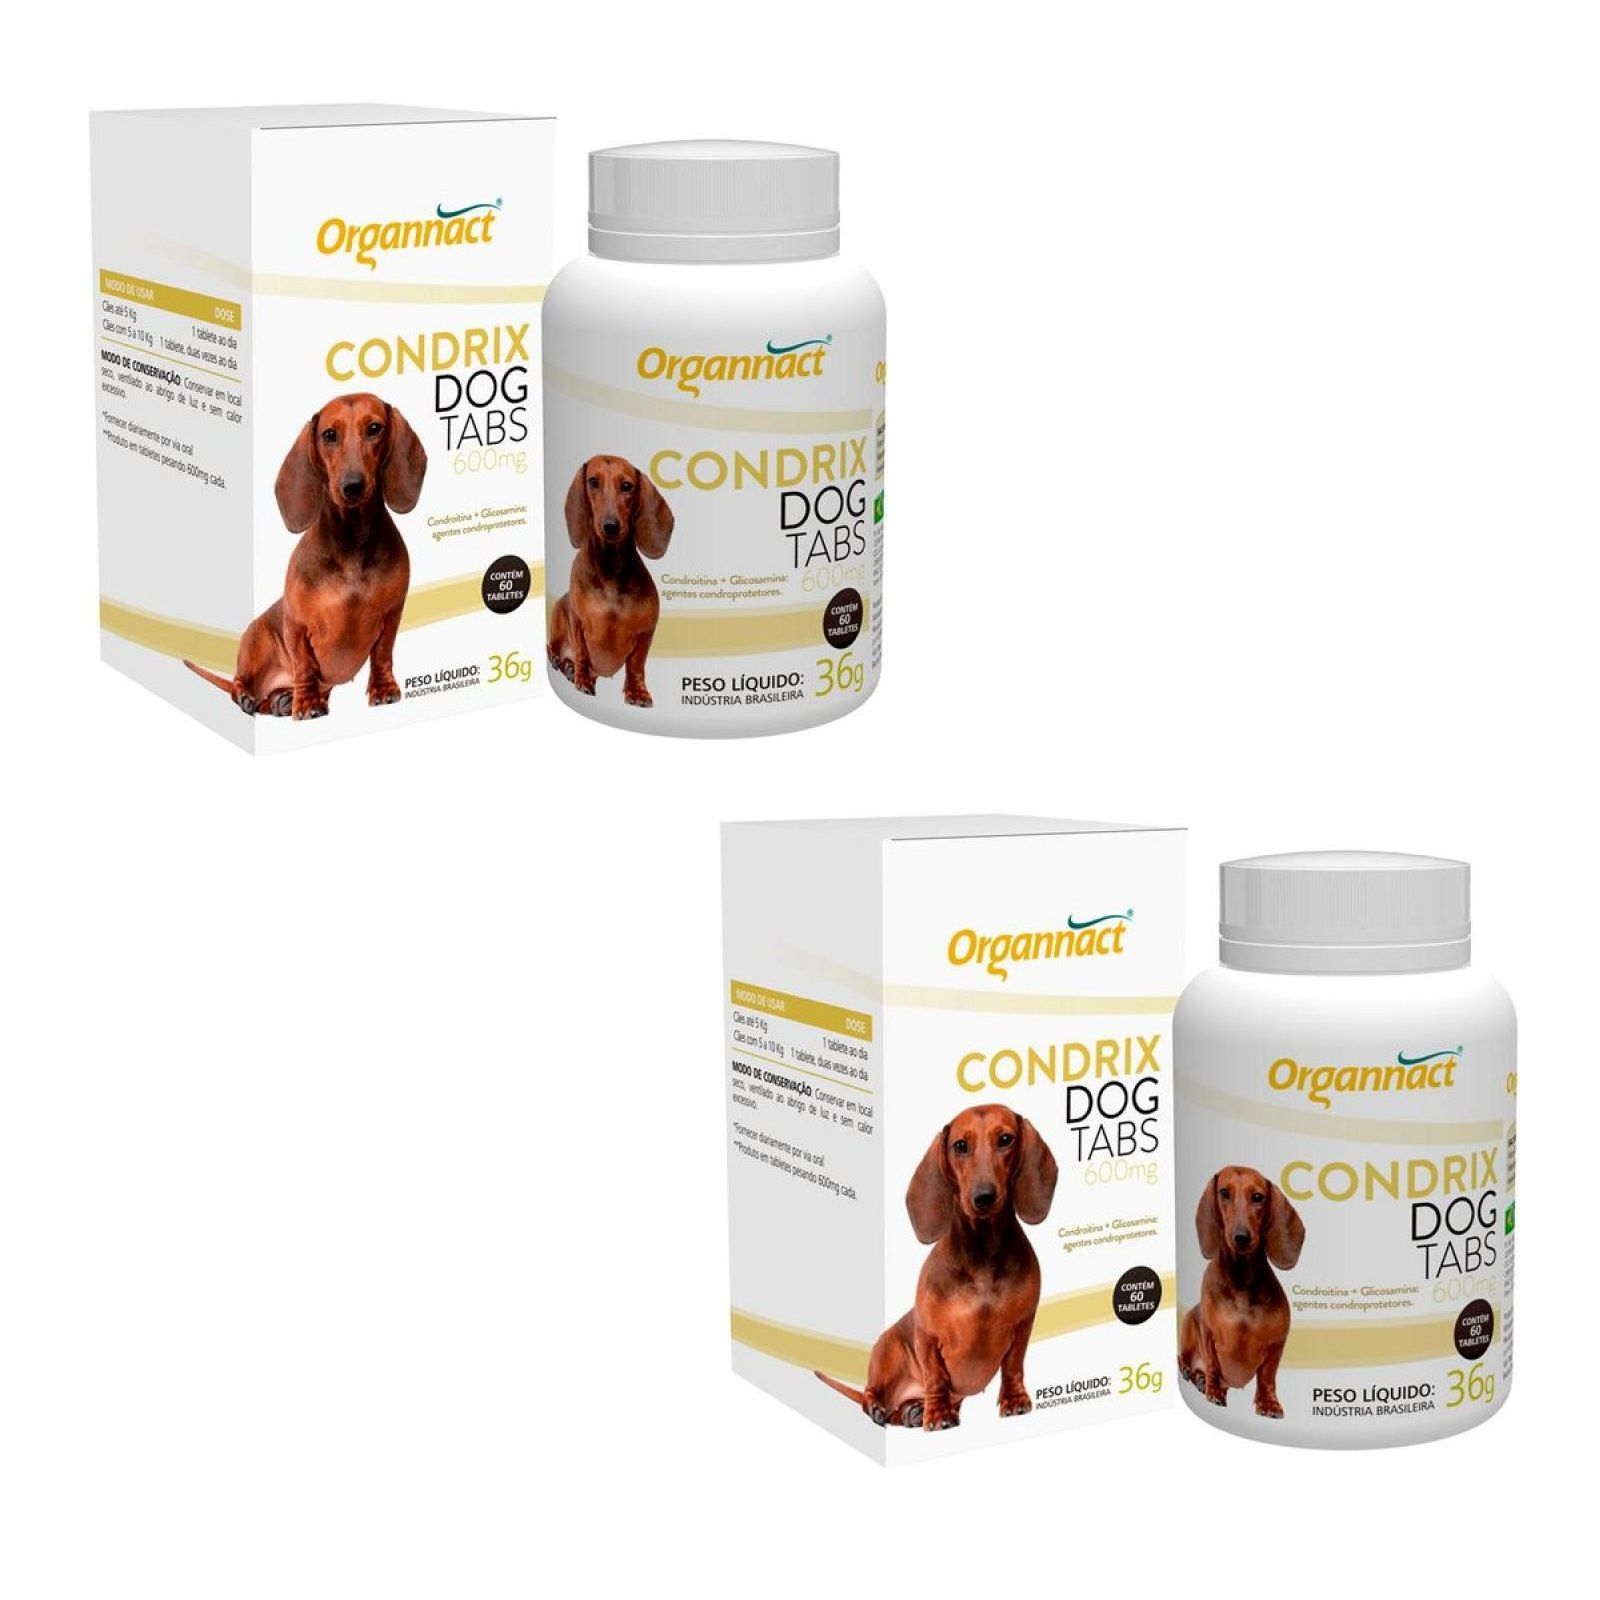 Kit 2 Unidades Condrix Dog Tabs 600mg (36g) - Organnact